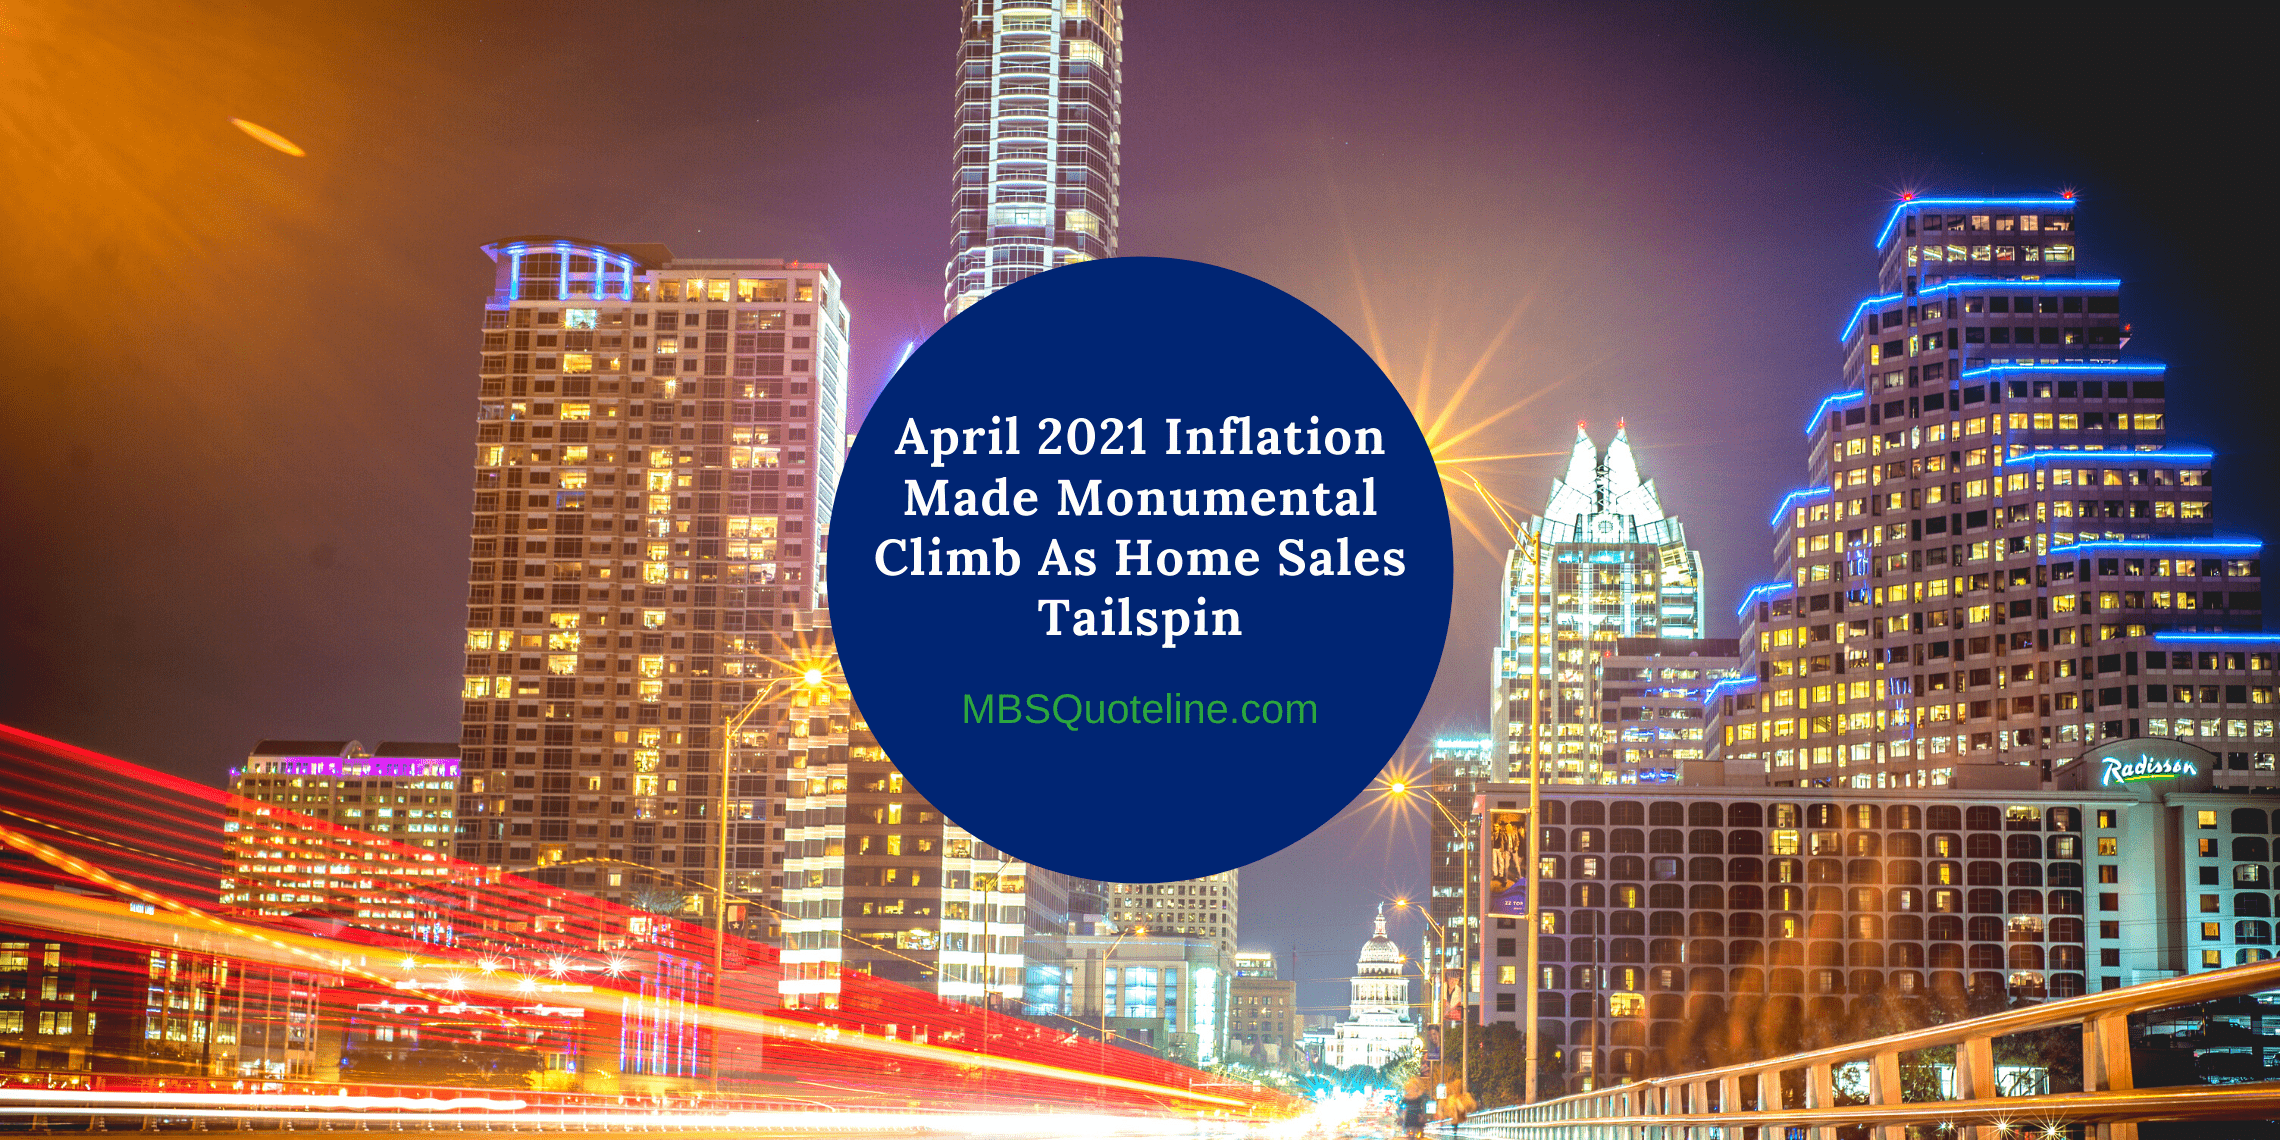 April 2021 Inflation Made Monumental Climb As Home Sales Tailspin MortgageTime MBSQuoteline Featured